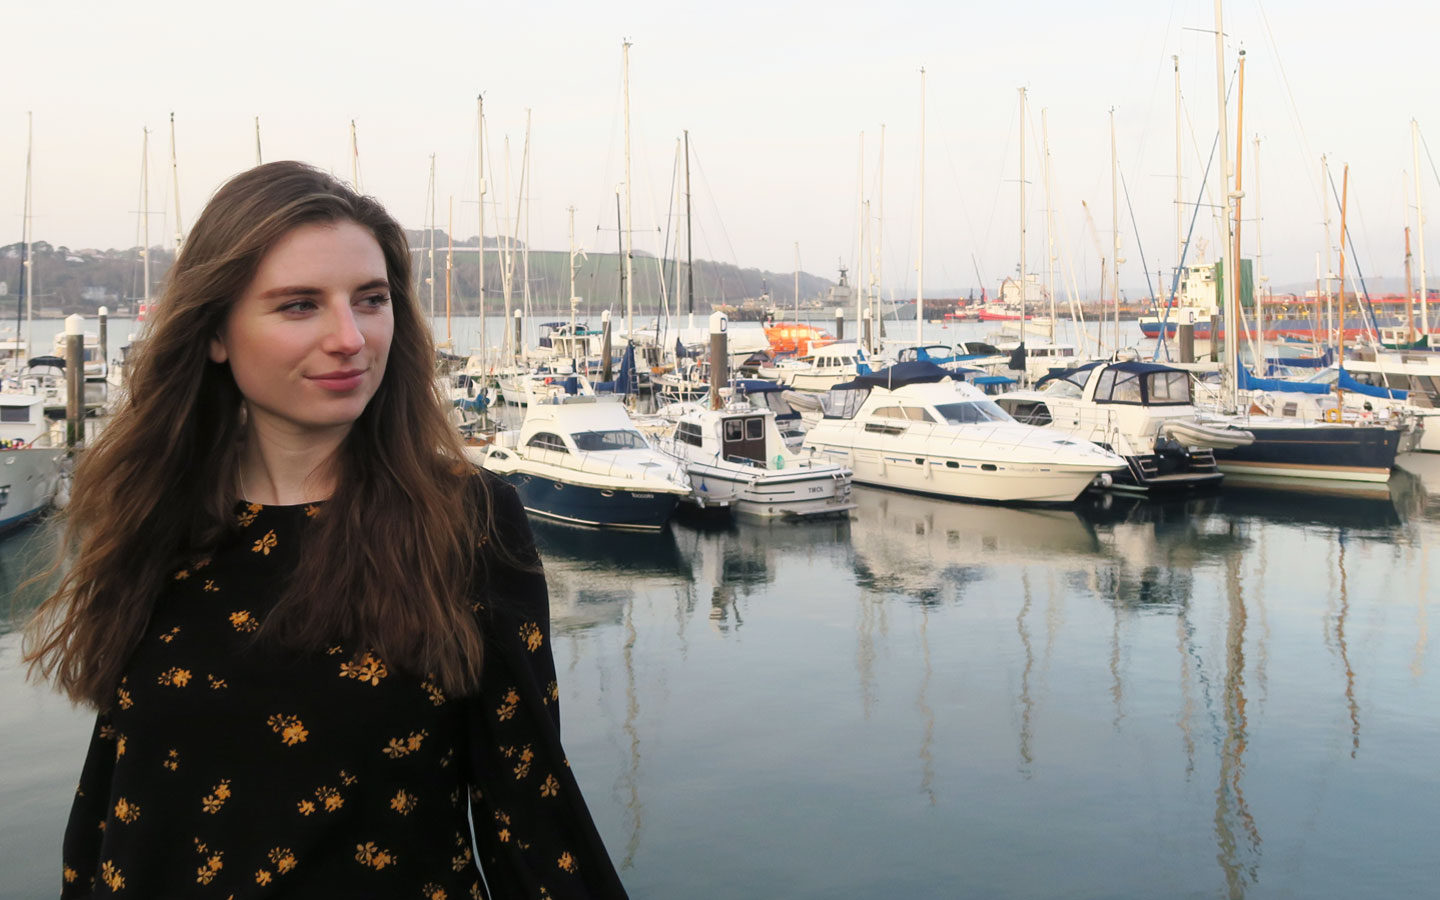 melissa carne standing in front of boats in falmouth harbour